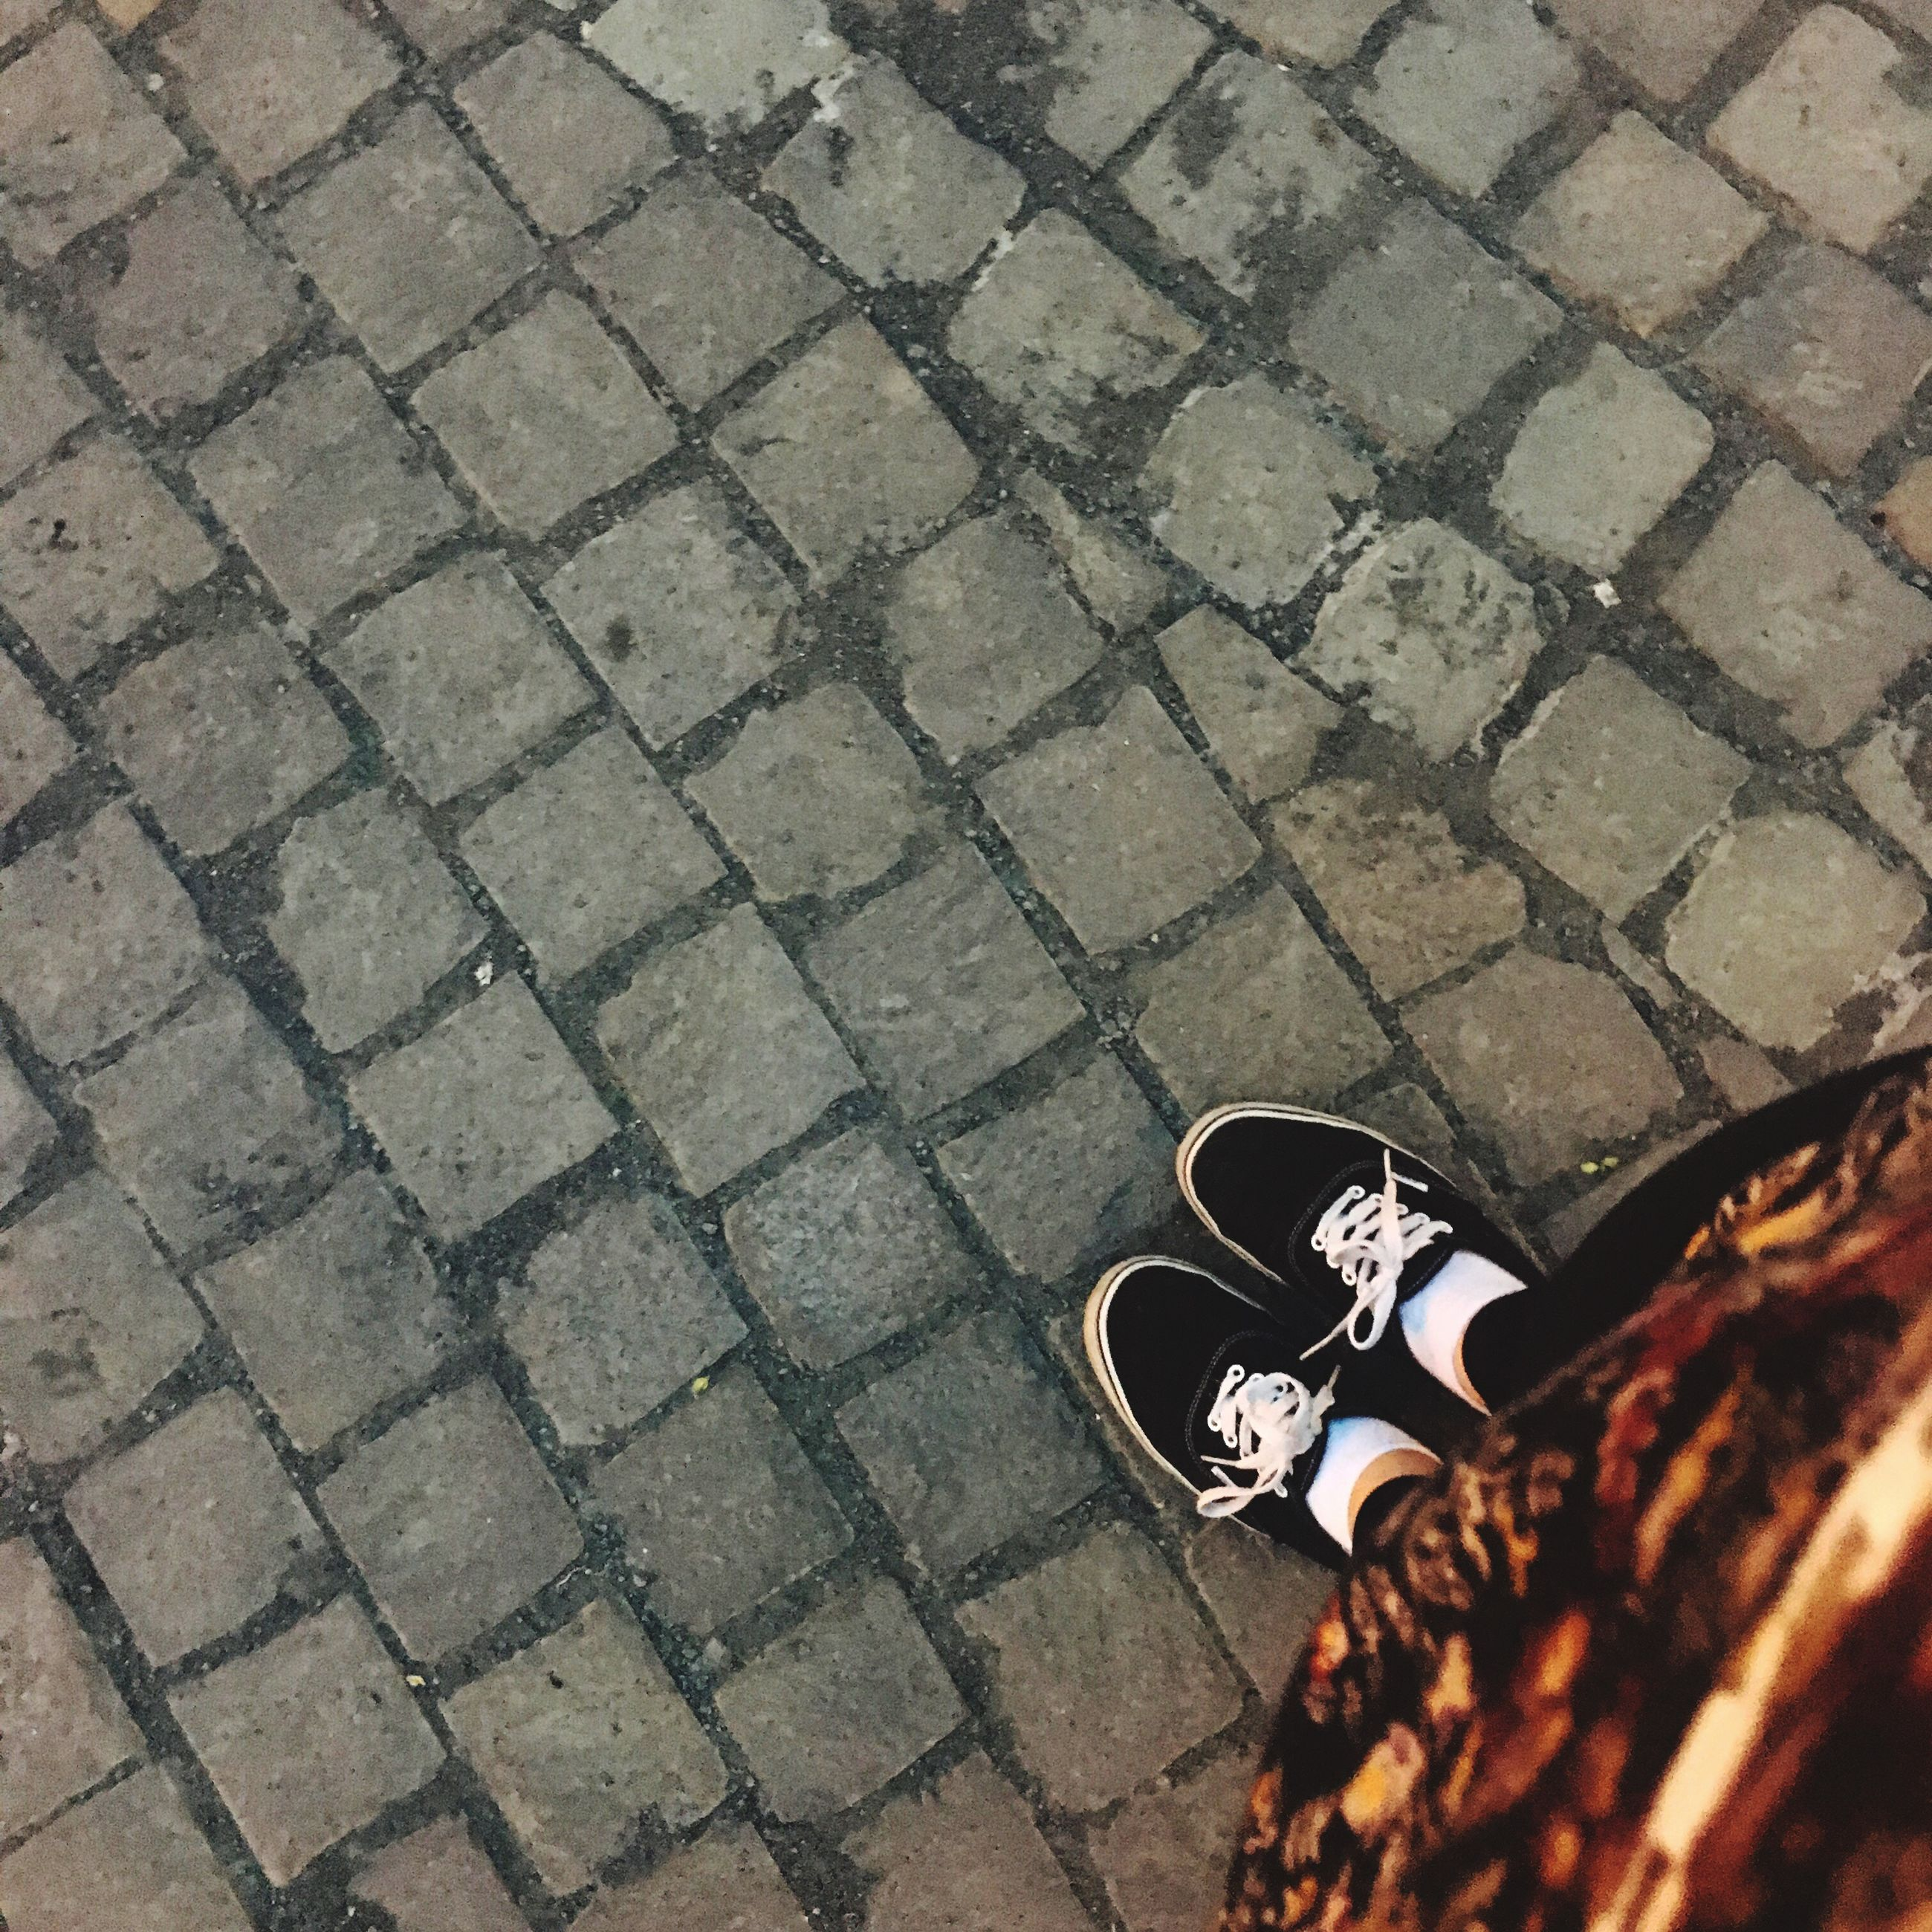 cobblestone, paving stone, street, high angle view, footpath, sidewalk, outdoors, pattern, shadow, day, sunlight, pavement, walkway, shoe, road, textured, bicycle, lifestyles